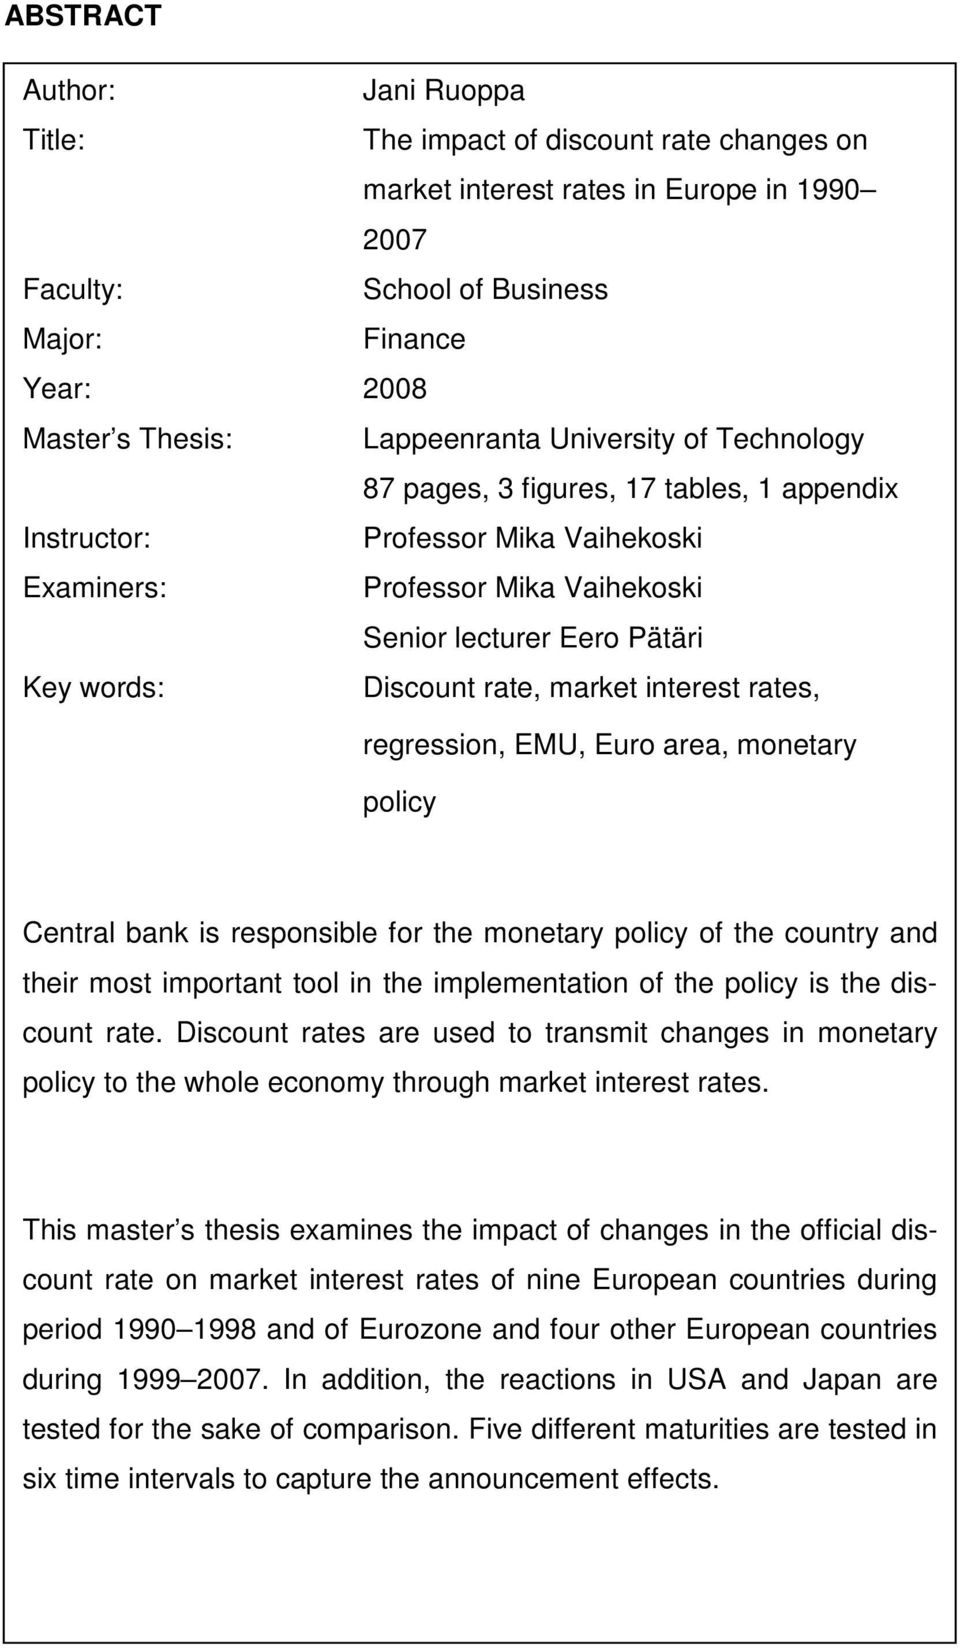 Discount rate, market interest rates, regression, EMU, Euro area, monetary policy Central bank is responsible for the monetary policy of the country and their most important tool in the